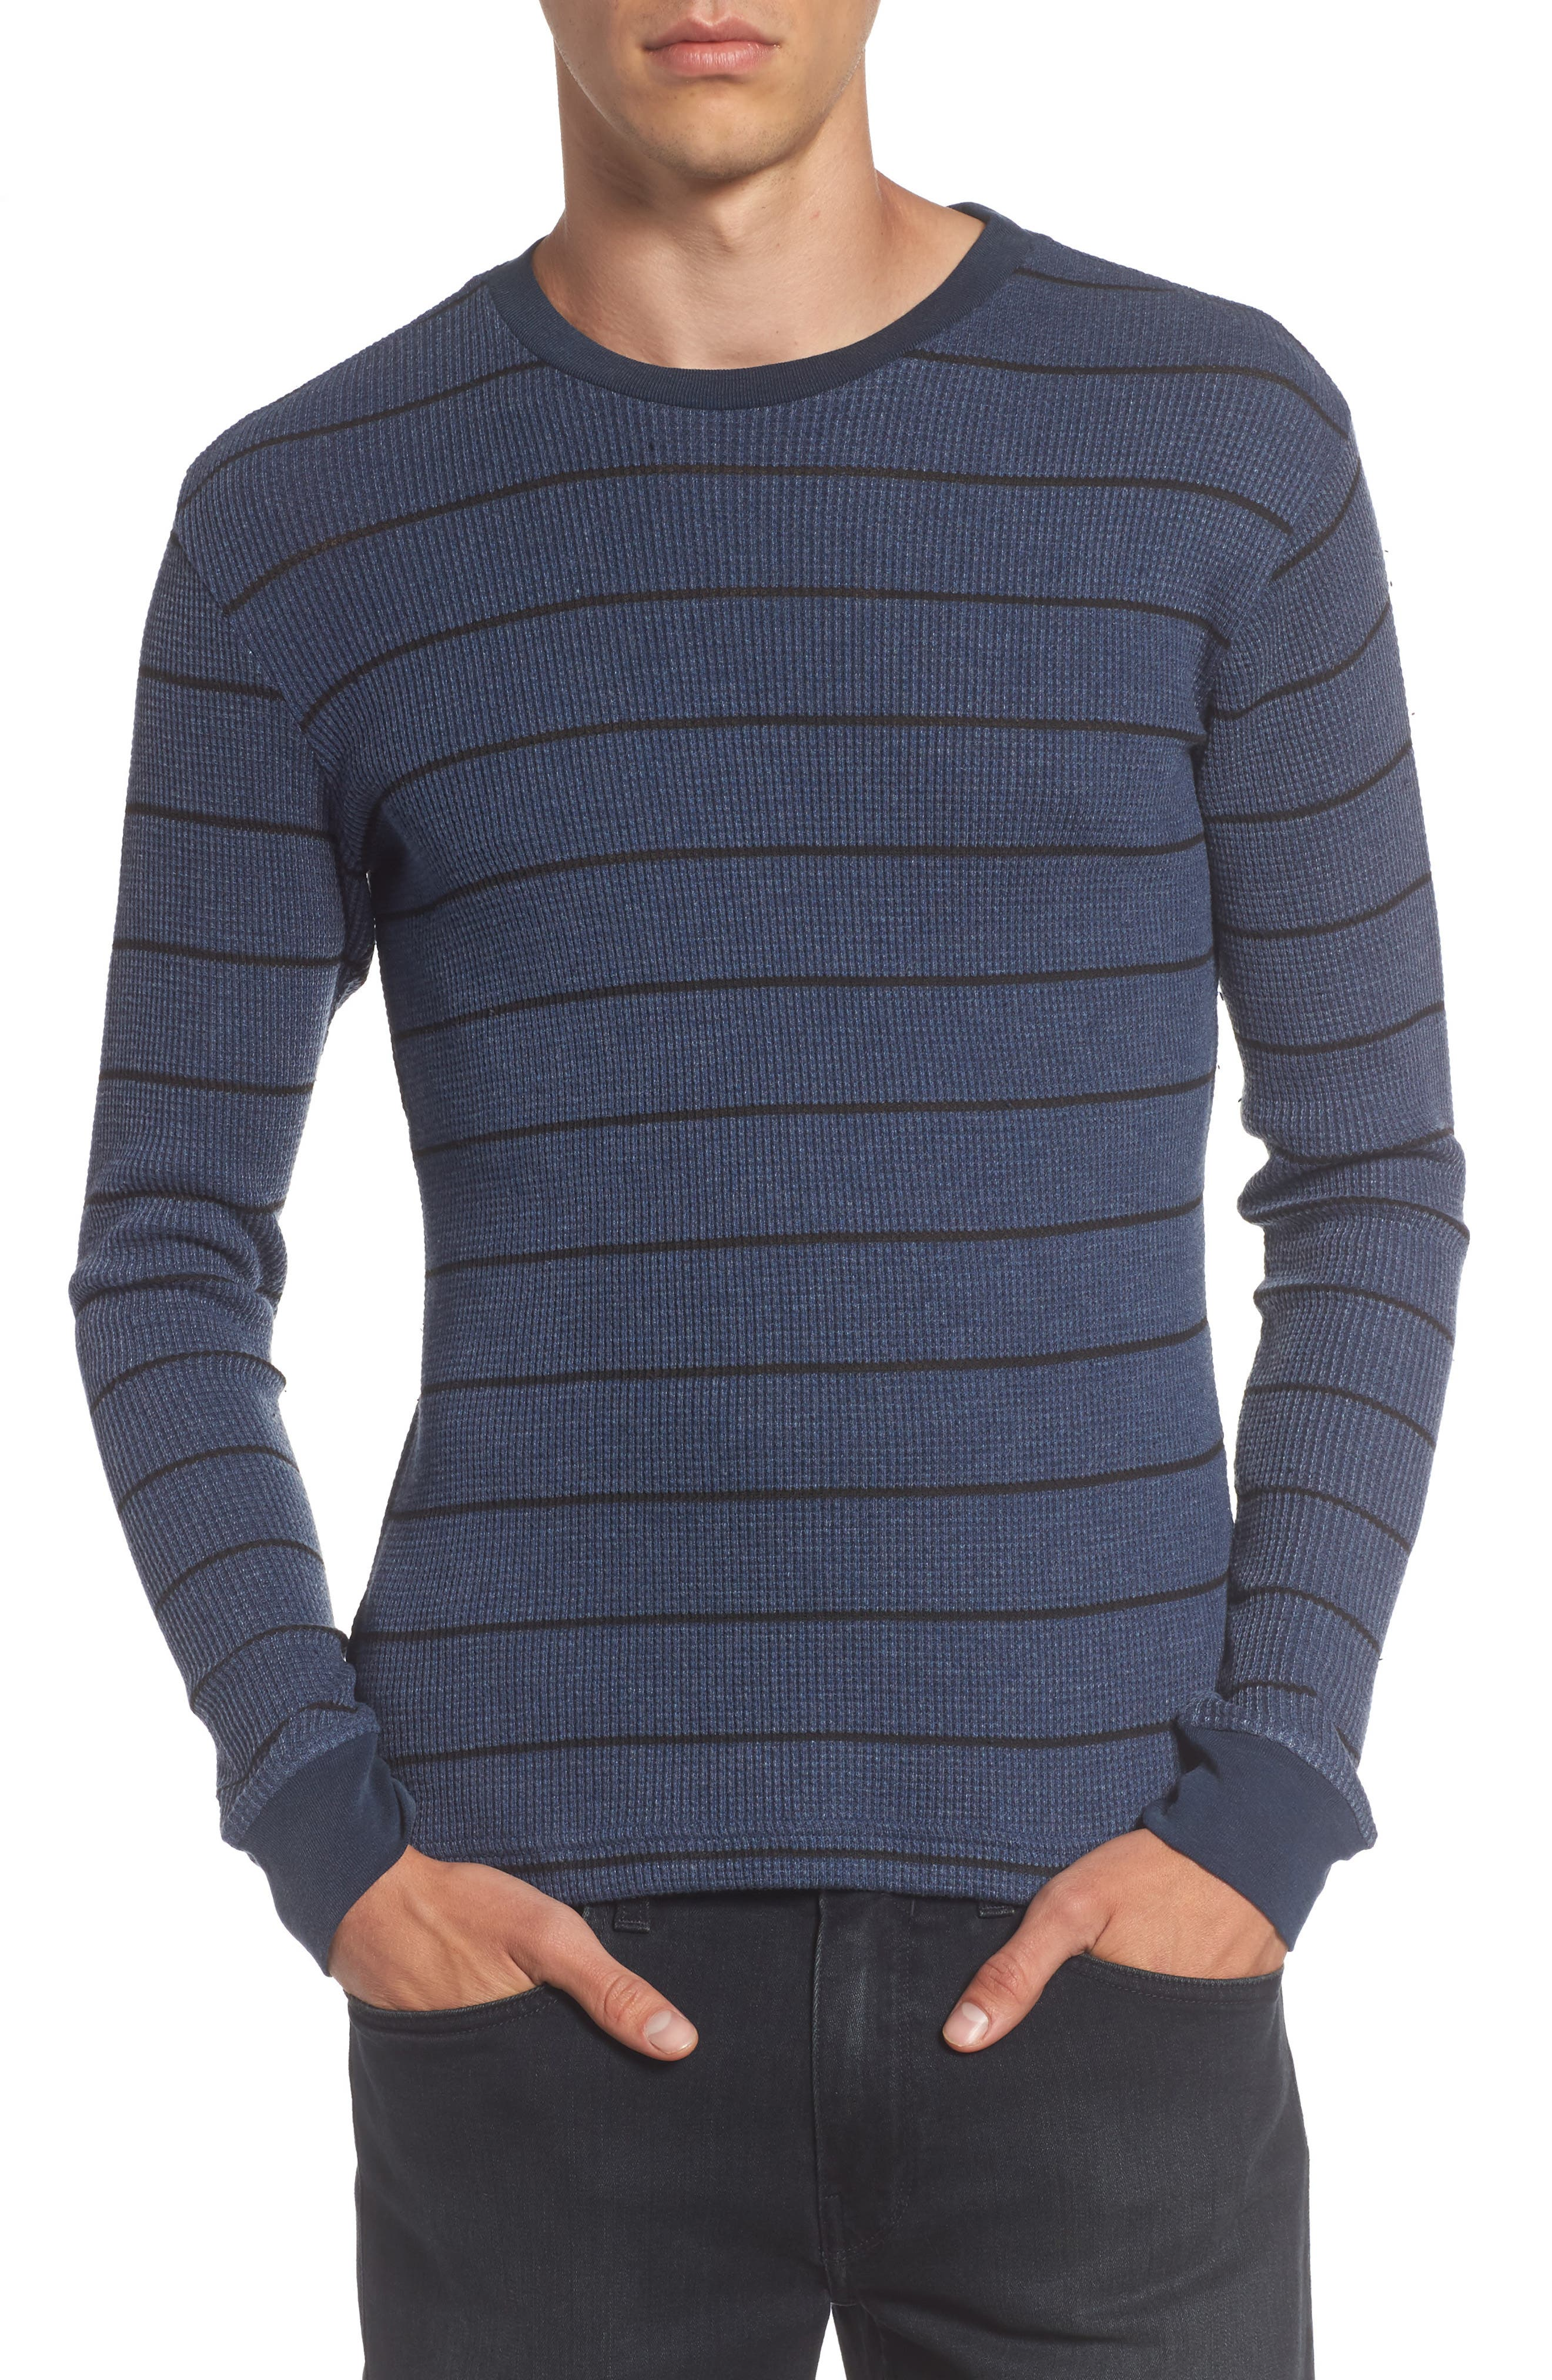 Alternate Image 1 Selected - RVCA Neutral Stripe Thermal T-Shirt